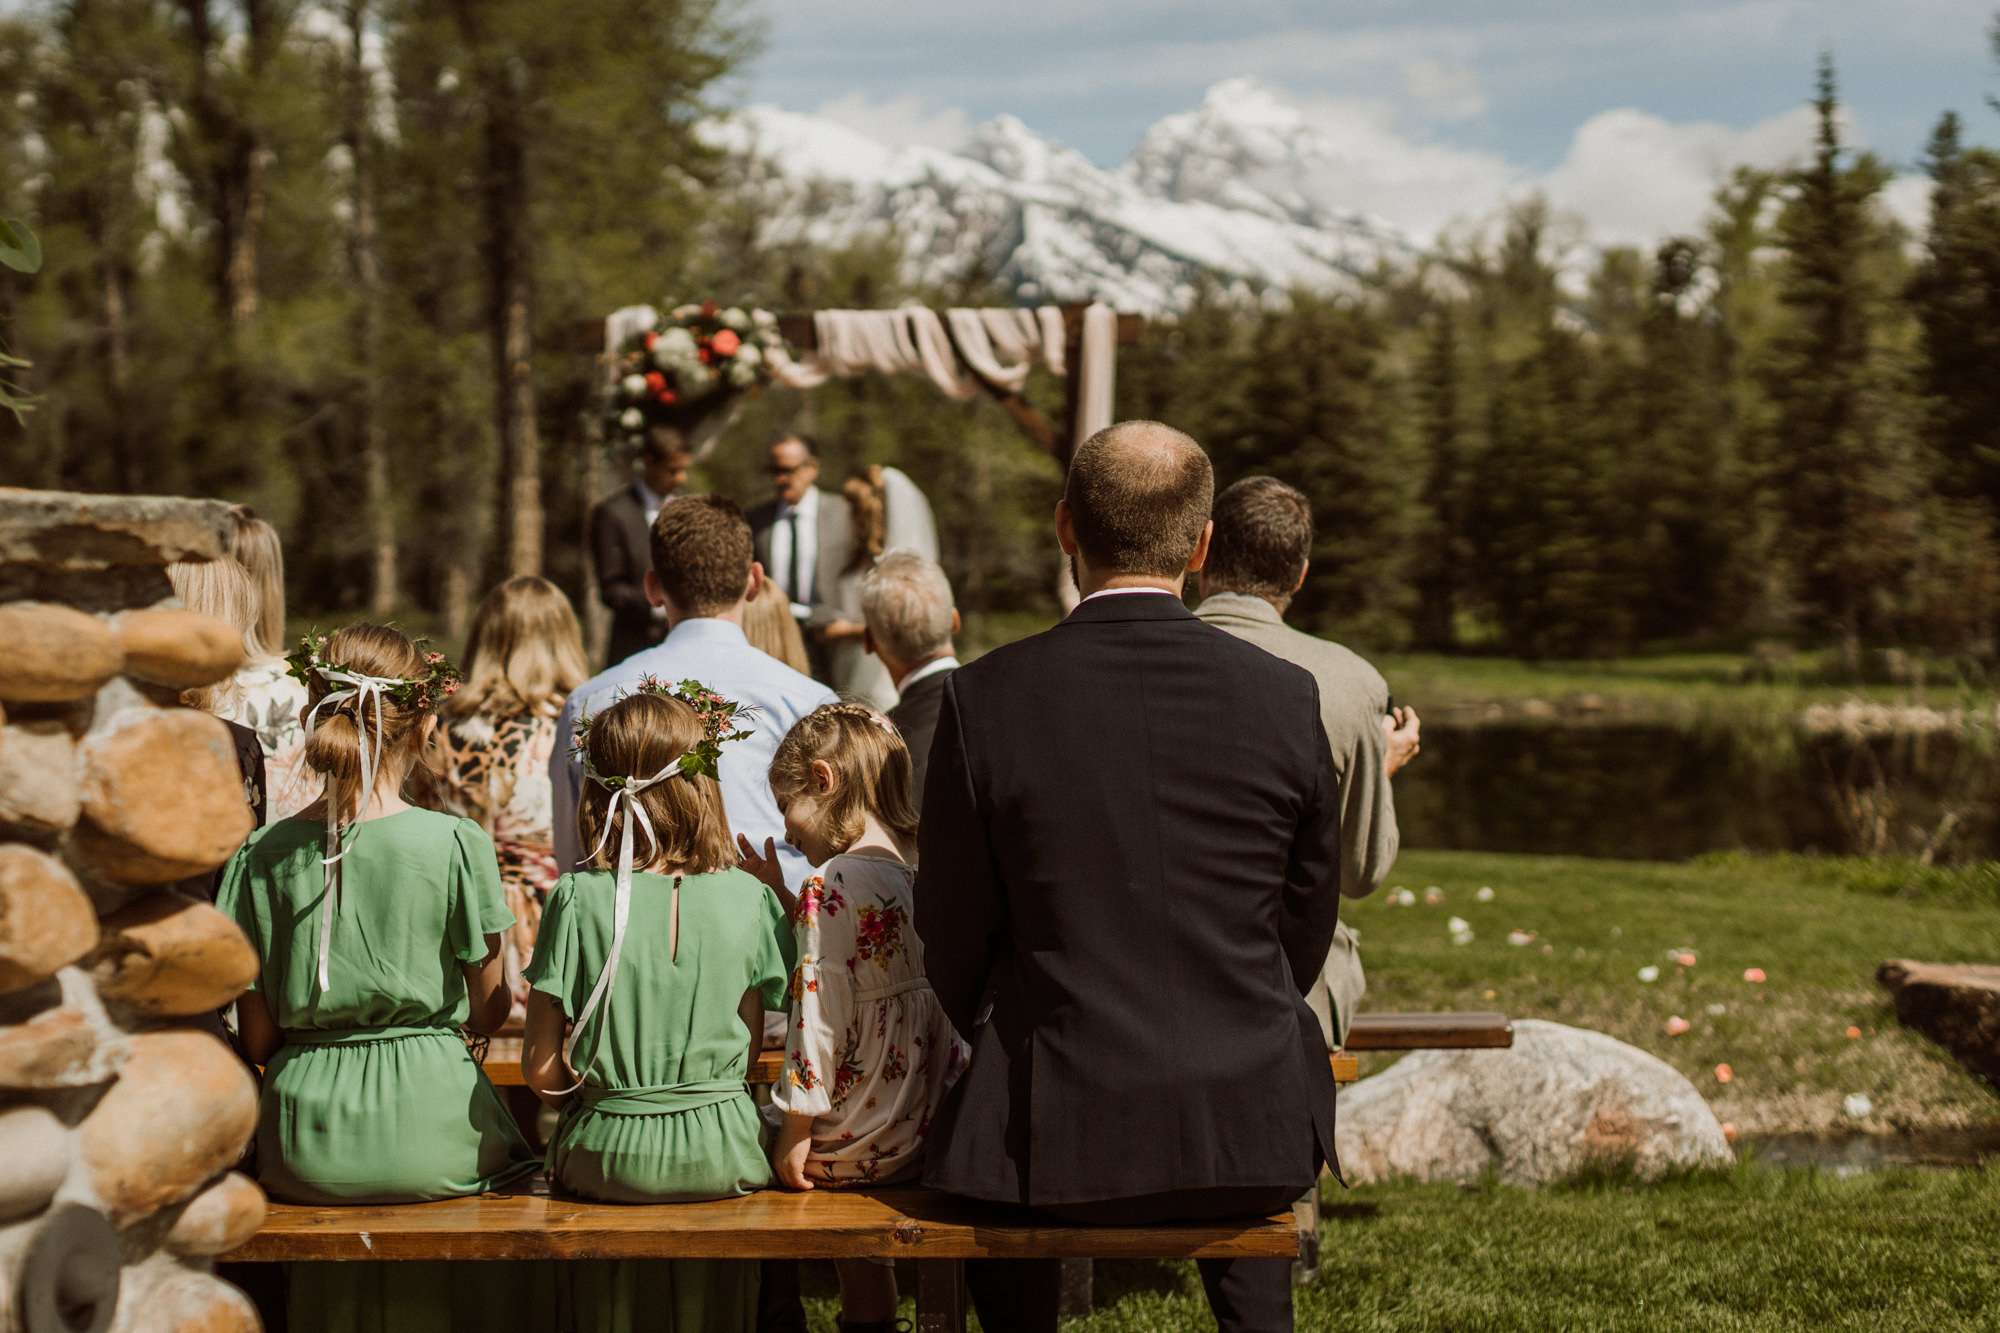 grand-teton-national-park-wedding-15.jpg